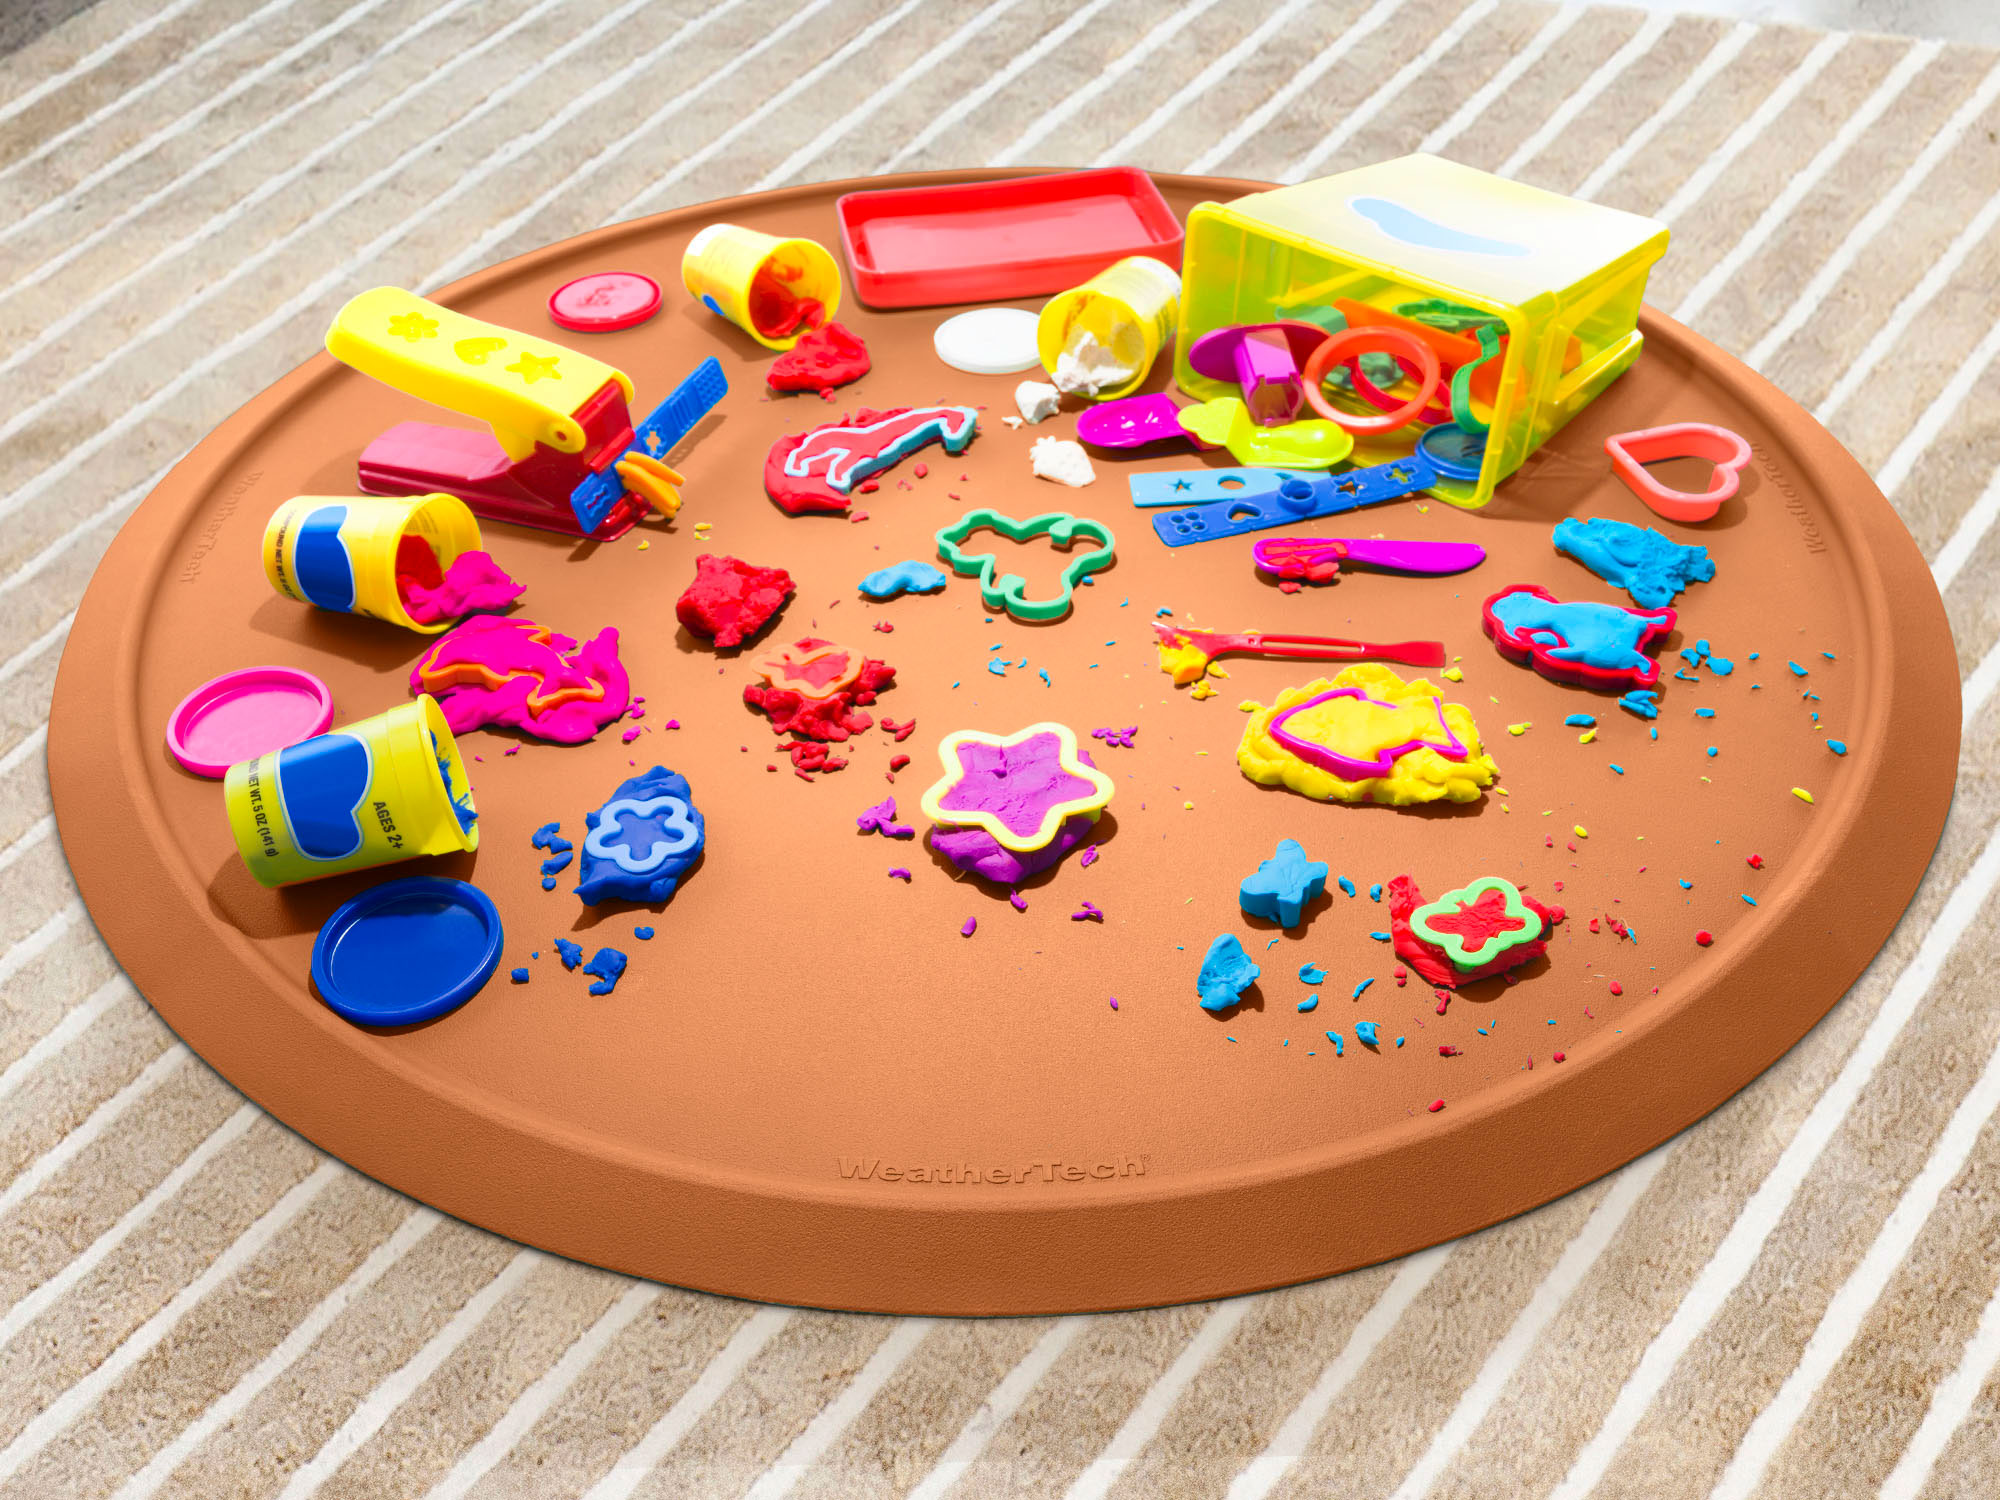 Christmas Tree Mat is a welcome addition to any play area, keeping messes contained and your floors clean.